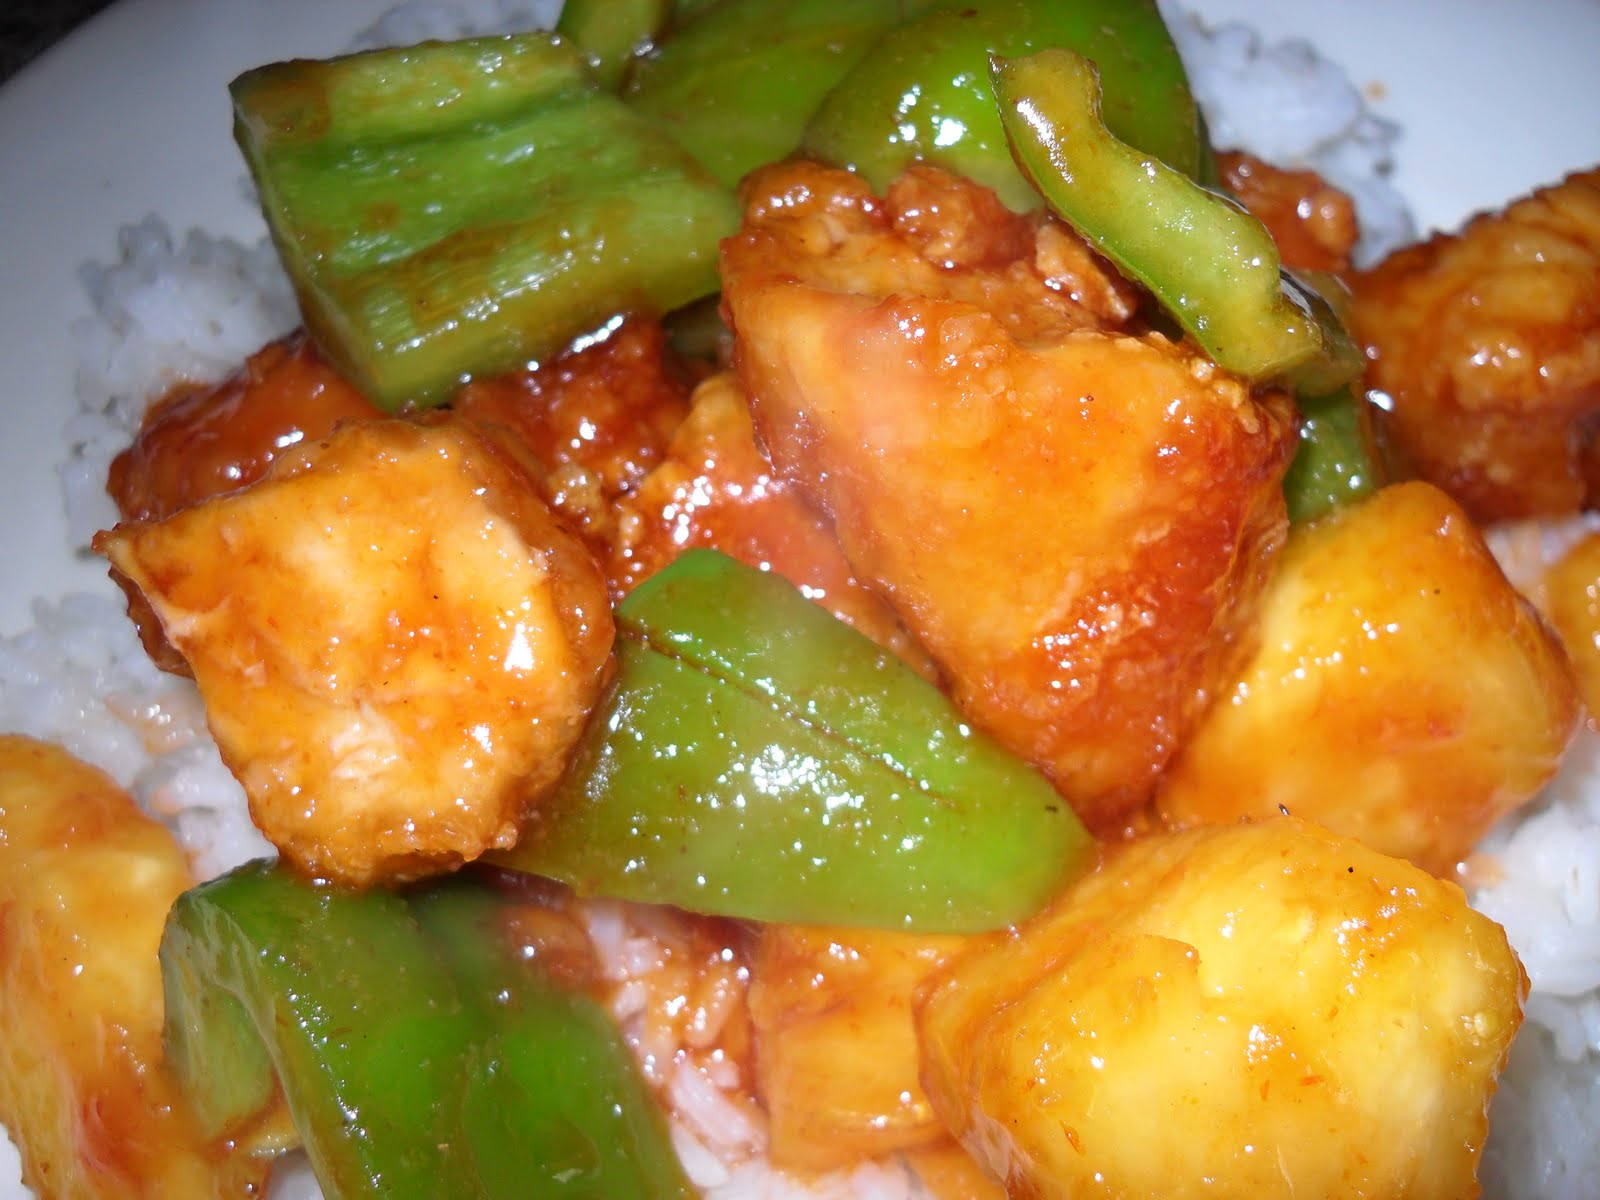 Facebook April's Home Cooking's Photos - Sweet and Sour Pork :